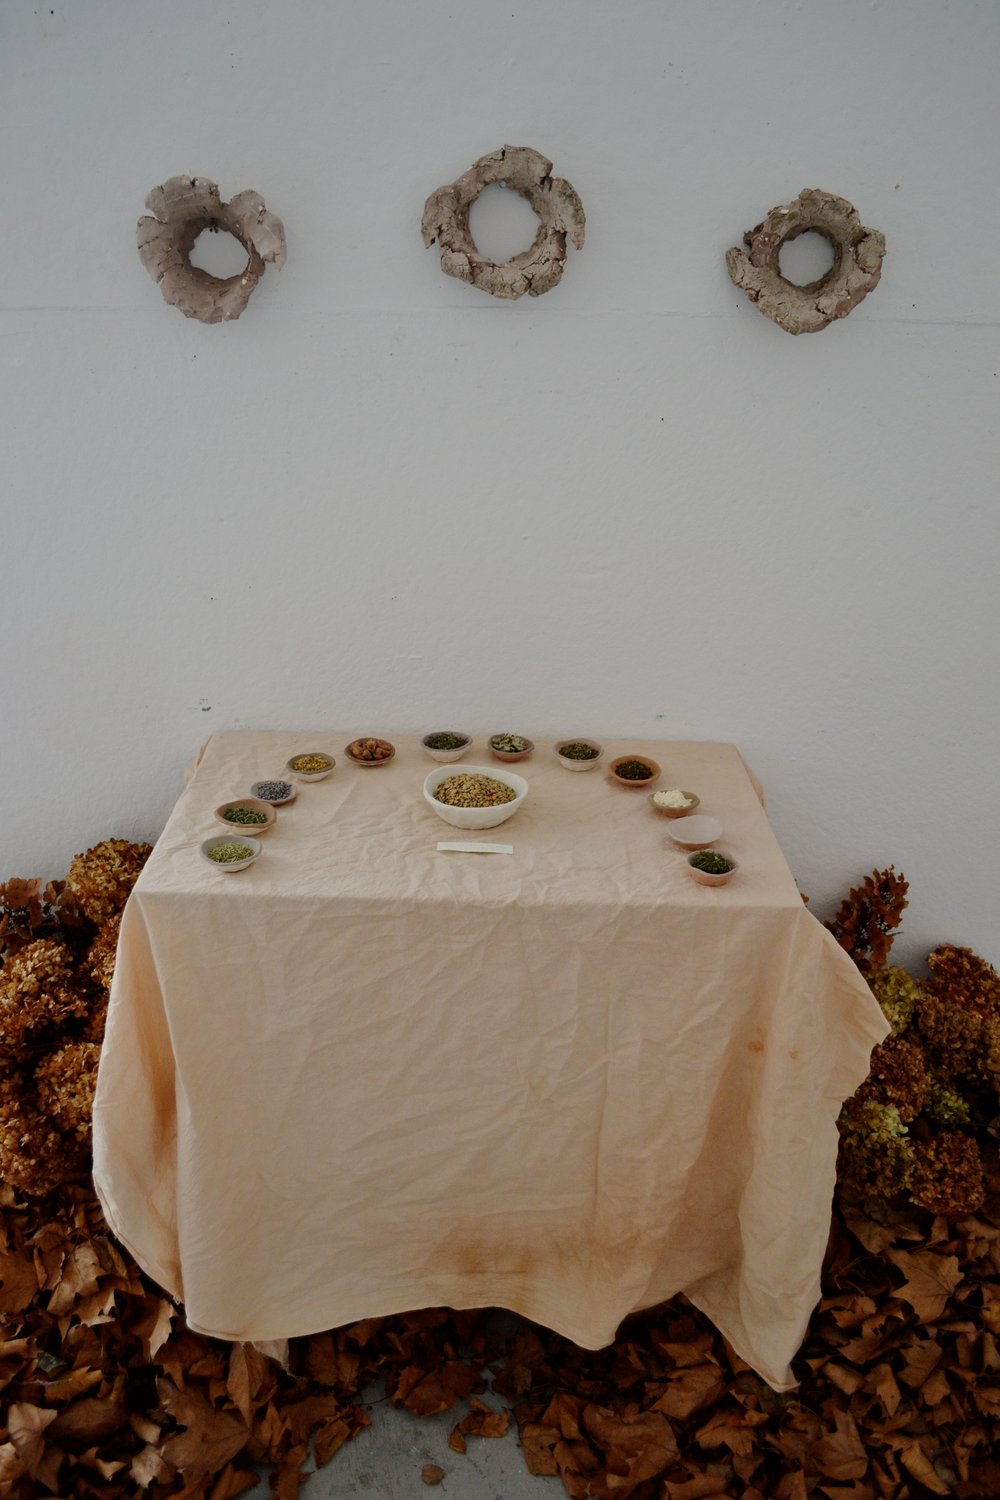 Take, Eat; This Is My Body Which Is Broken For You   Multimedia Installation  Herbs at the altar (clockwise): Rosemary, Oregano, Lavender, Elder, Myrrh, Lemon balm, Mullein, Basil, Mint, Frankincense, Sage, Yarrow.  Bowl of sunflower seeds  Unfired clay  2015